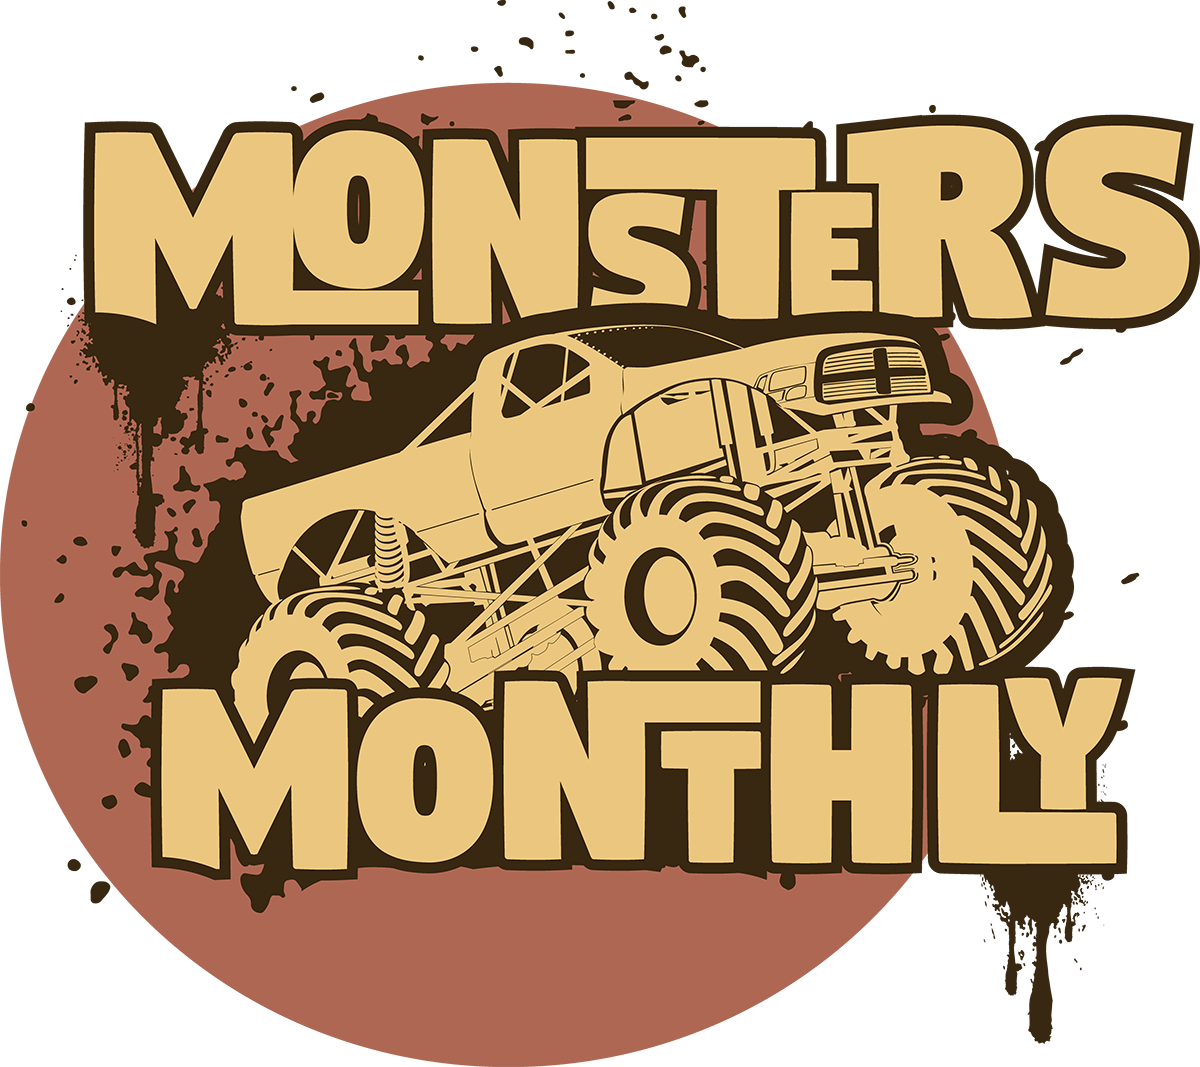 Monsters Monthly | Find monster truck events online!